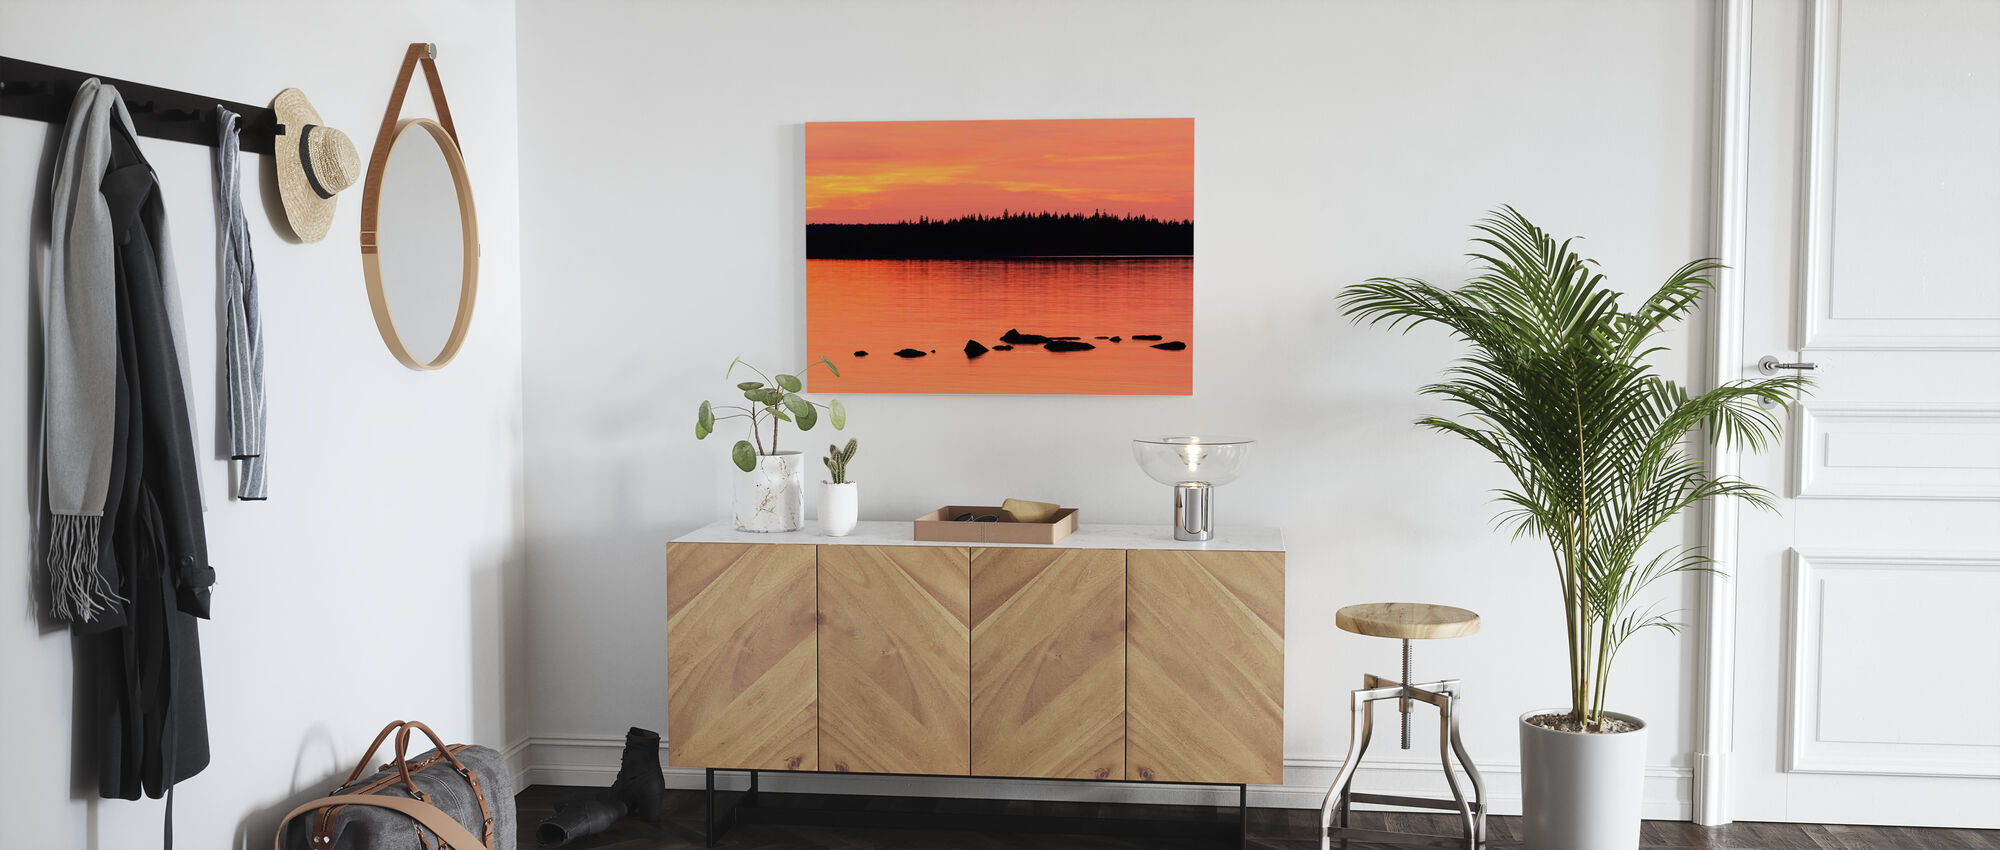 Sundown, Gotland - Canvas print - Hallway